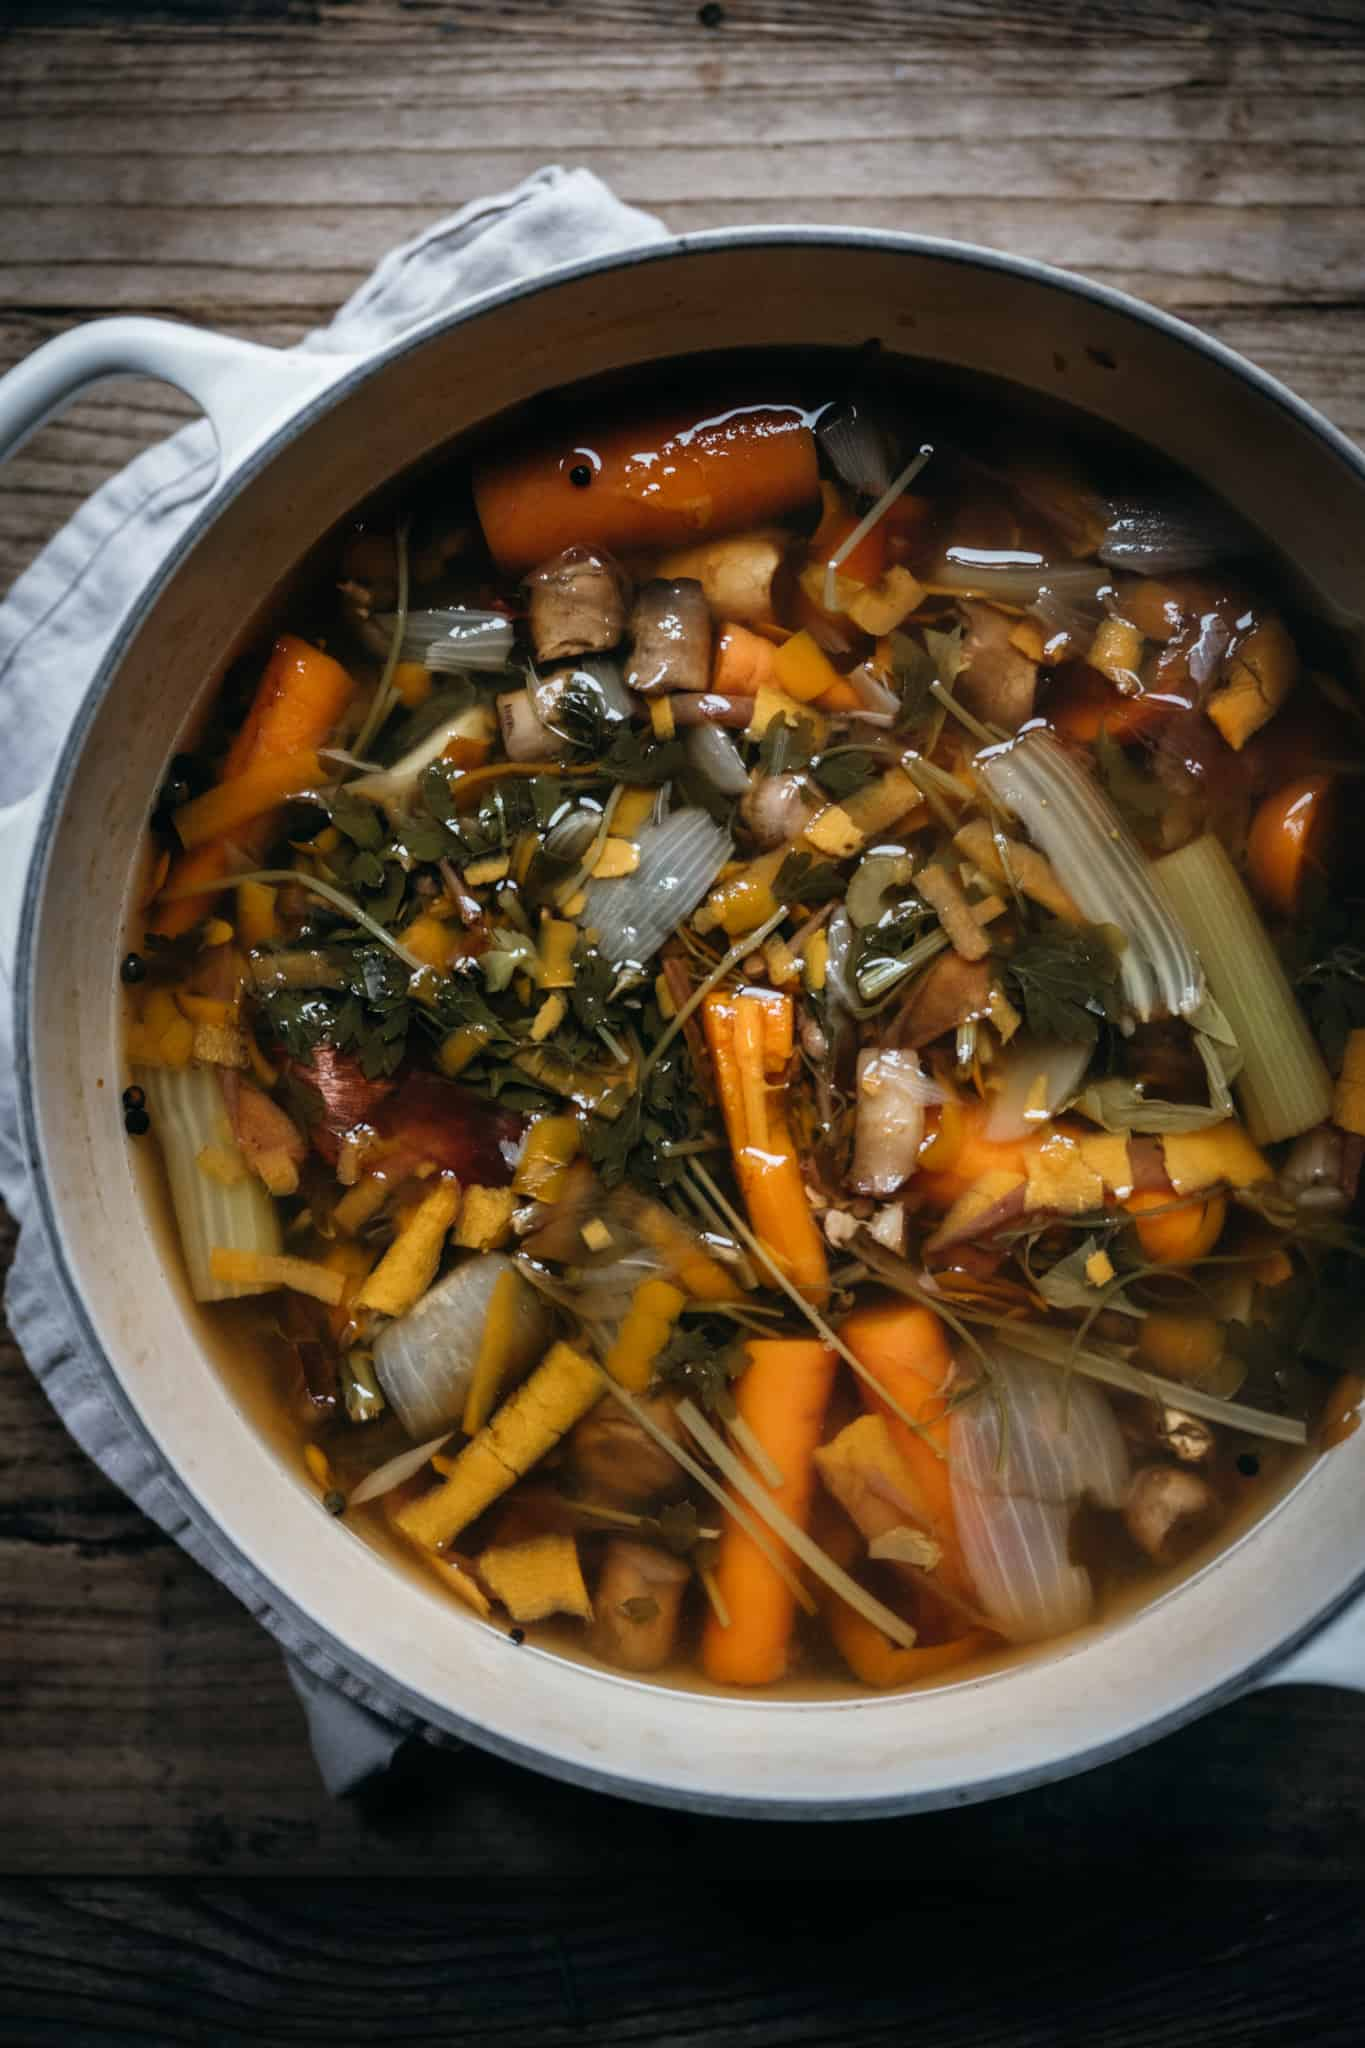 overhead view of cooked homemade vegetable broth in a large pot